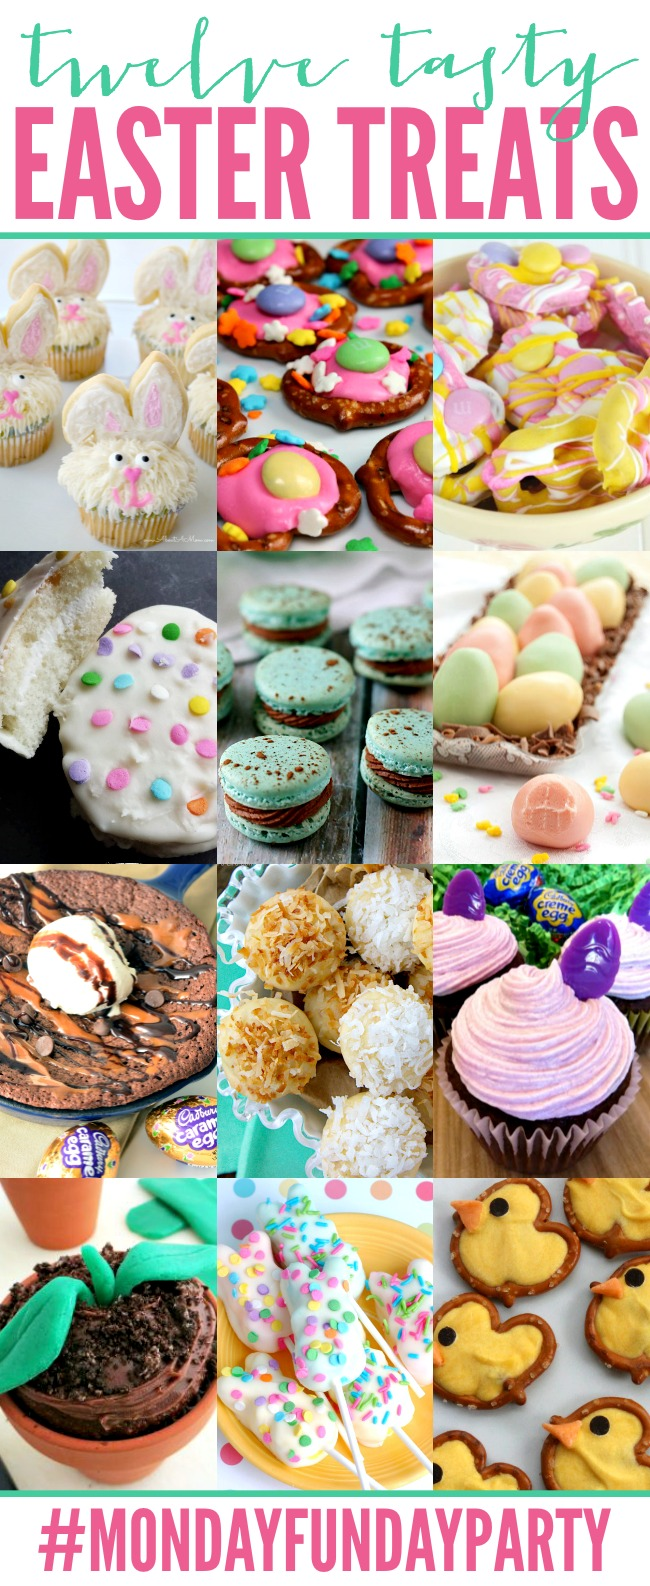 12 Tasty Easter Treats | #MondayFundayParty